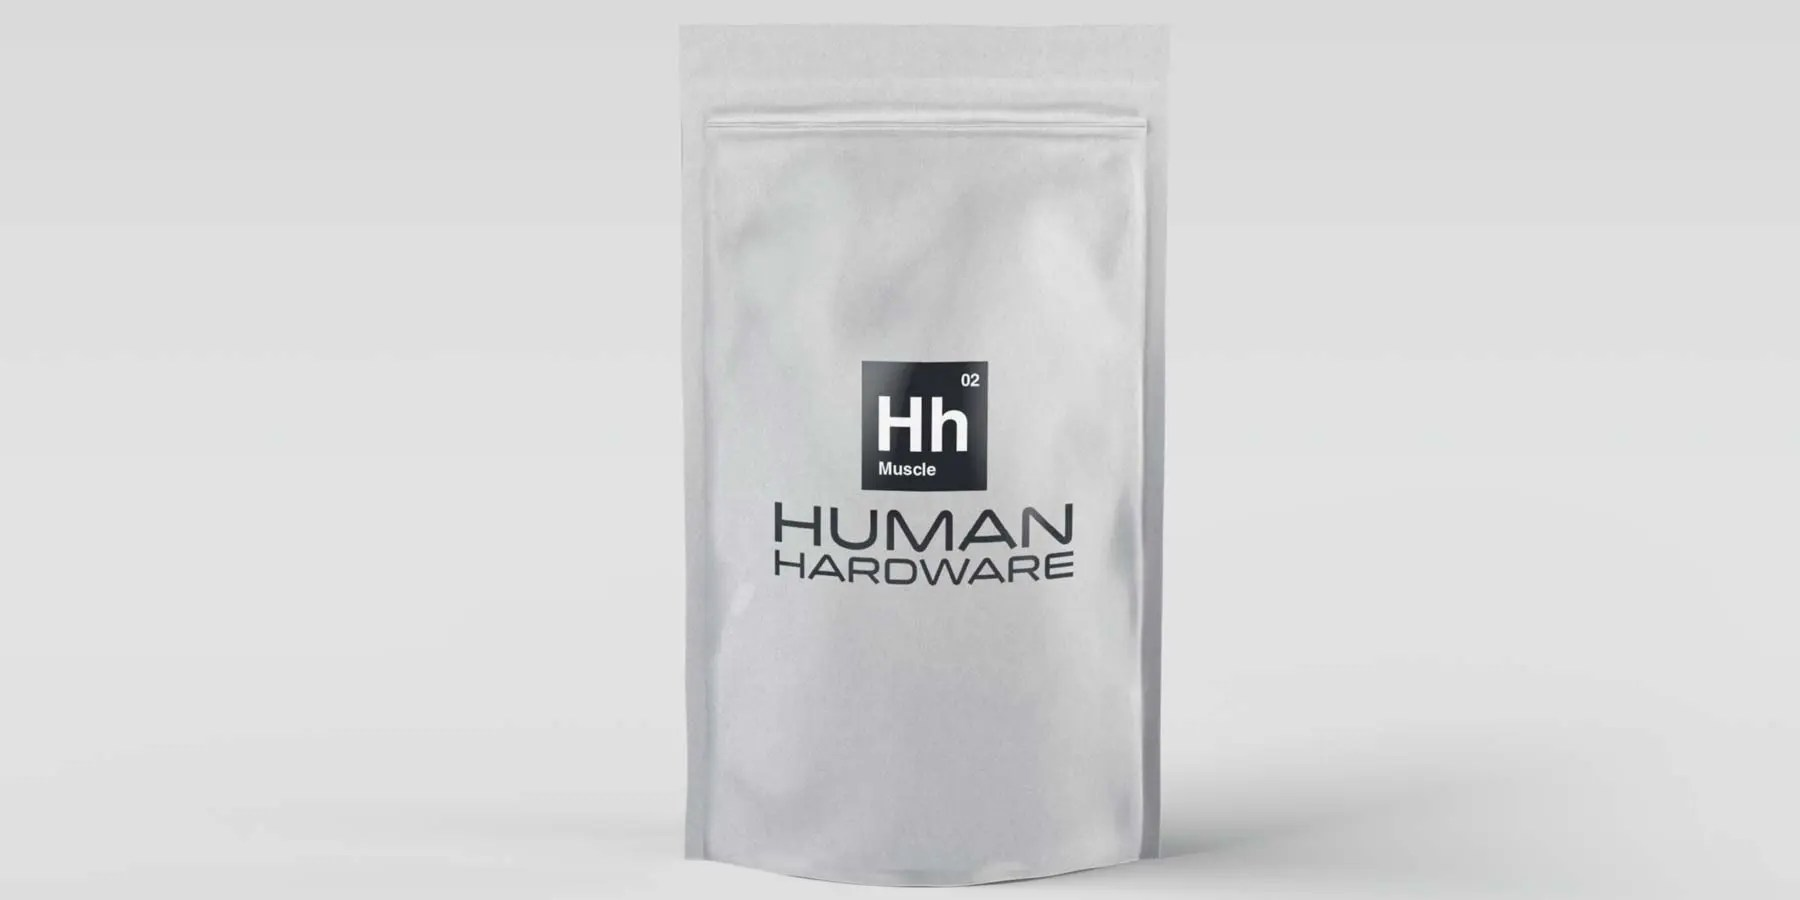 Human Hardware Digital Agency